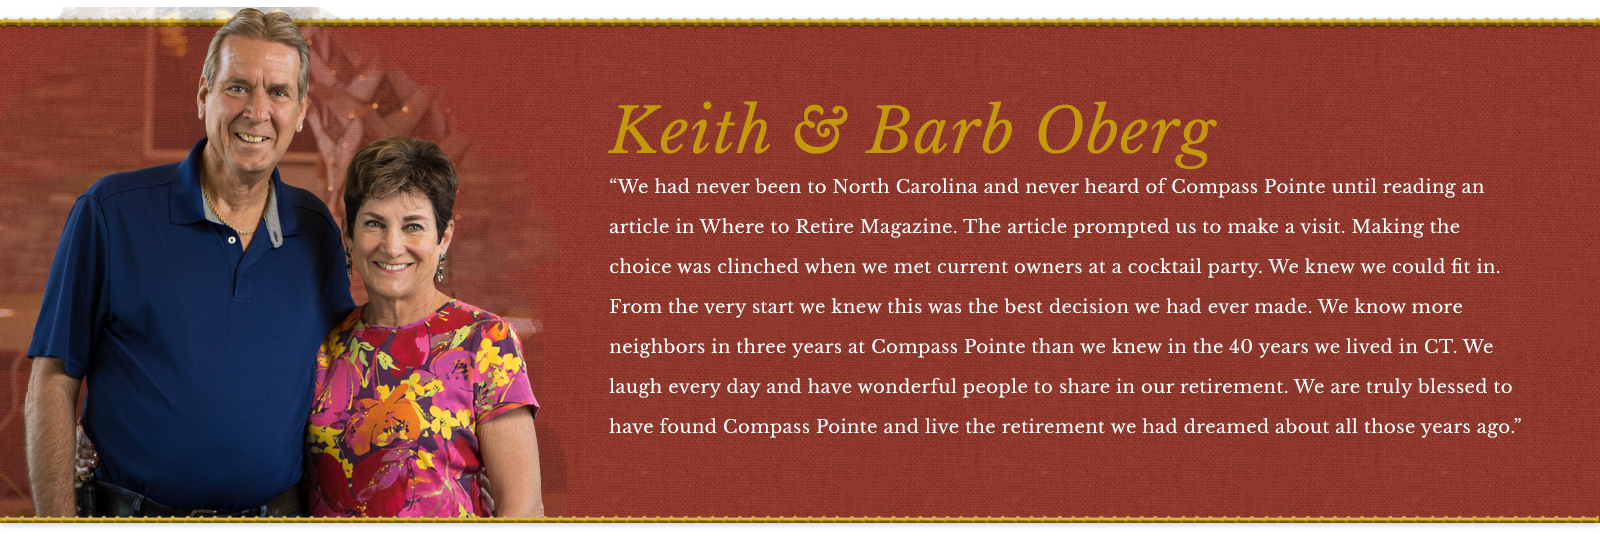 Keith and Barb Oberg Testimonial